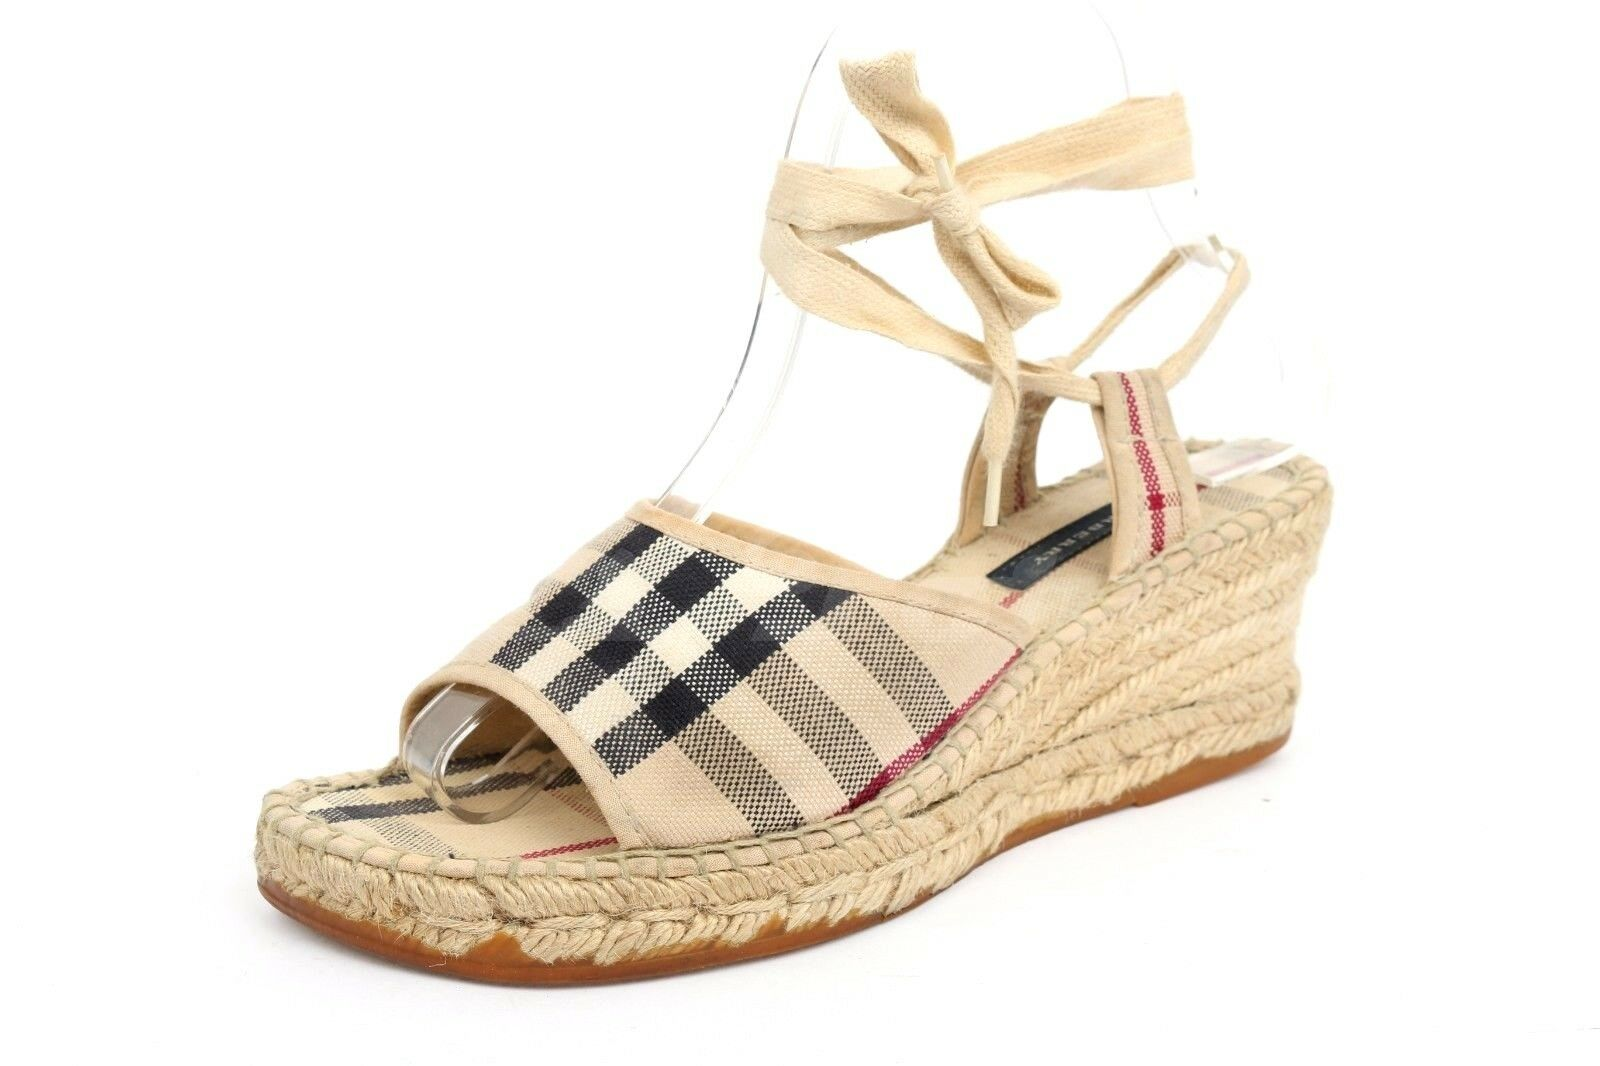 BURBERRY Brand Signature Pattern Fabric Fabric Fabric Ankle Strap Sandals   Wedges Sz. 36  más descuento